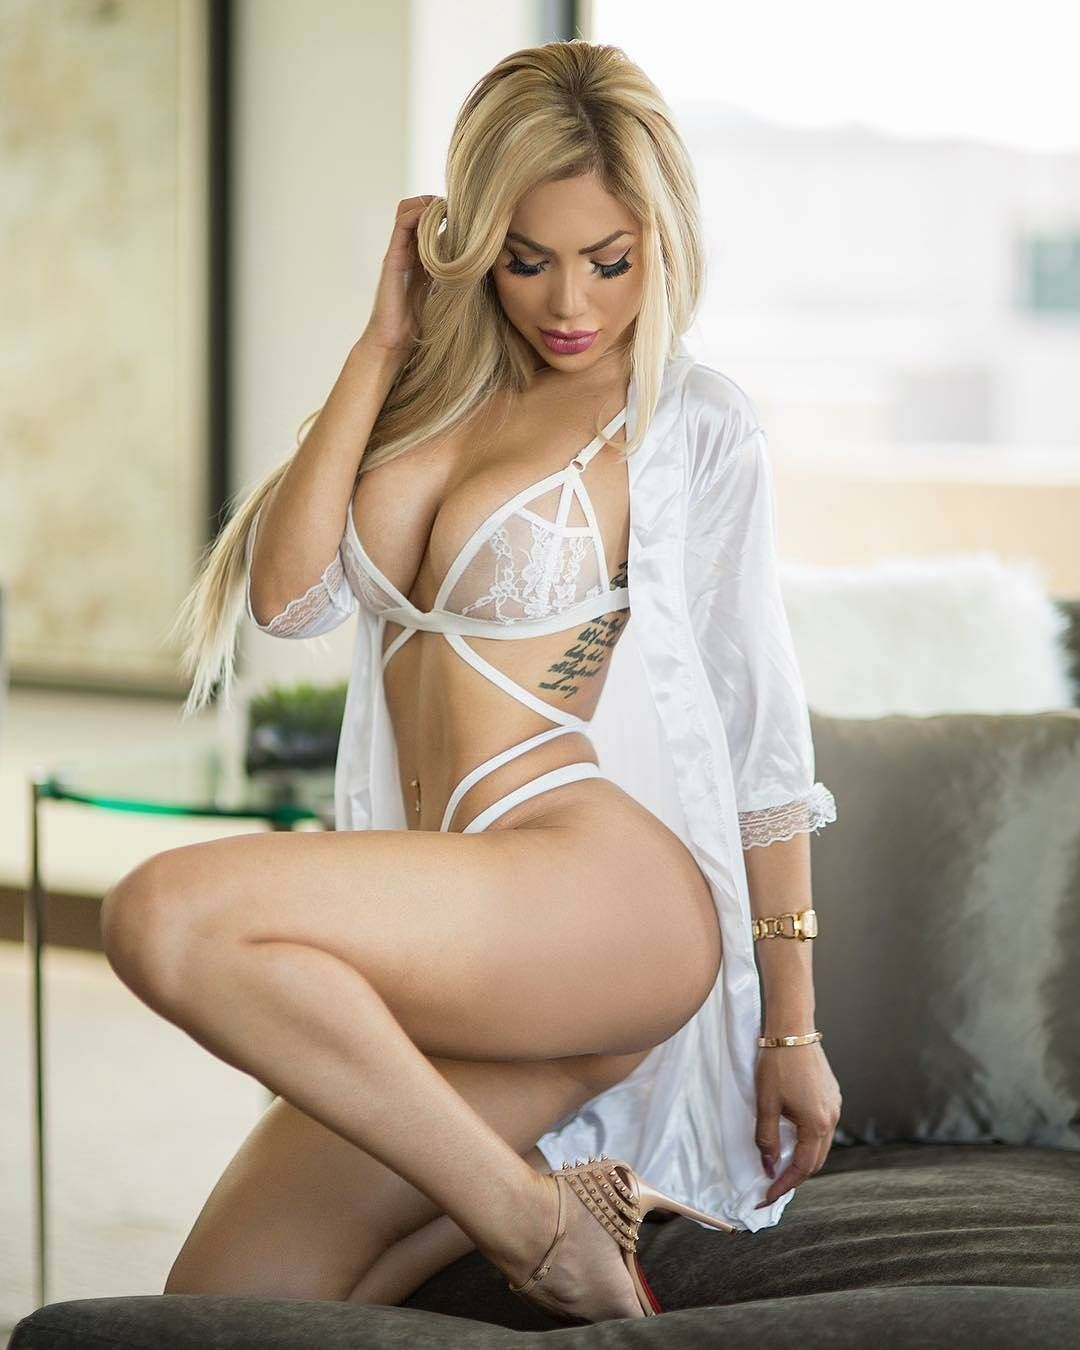 Babes live sexy